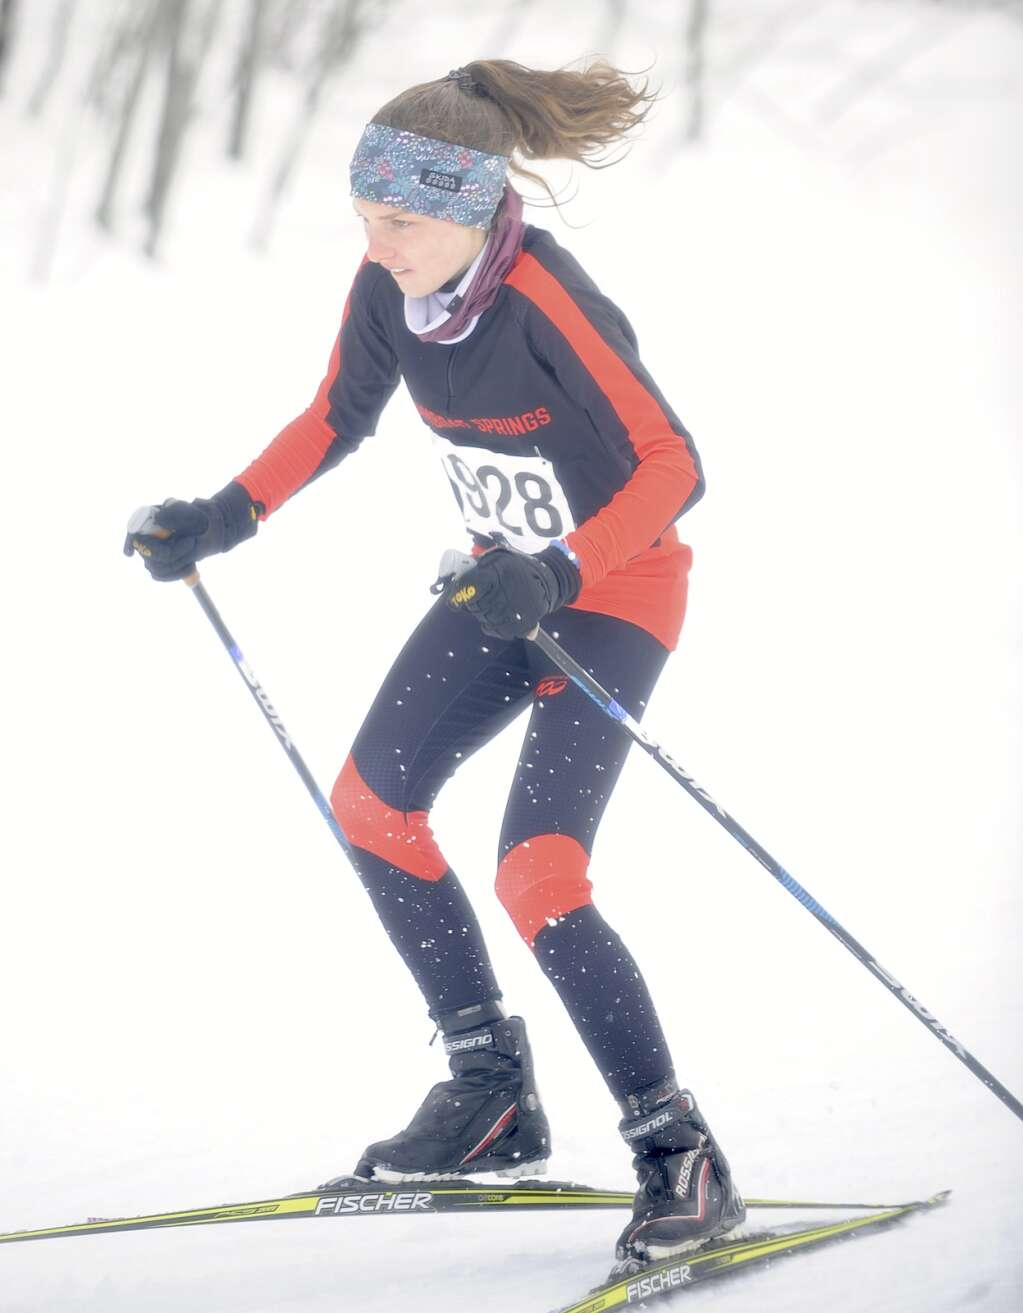 Steamboat Springs Nordic skier Meagan Maitre gets off to a hot start at a home race at the Steamboat Ski Touring Center on Friday afternoon. (Photo by Shelby Reardon)